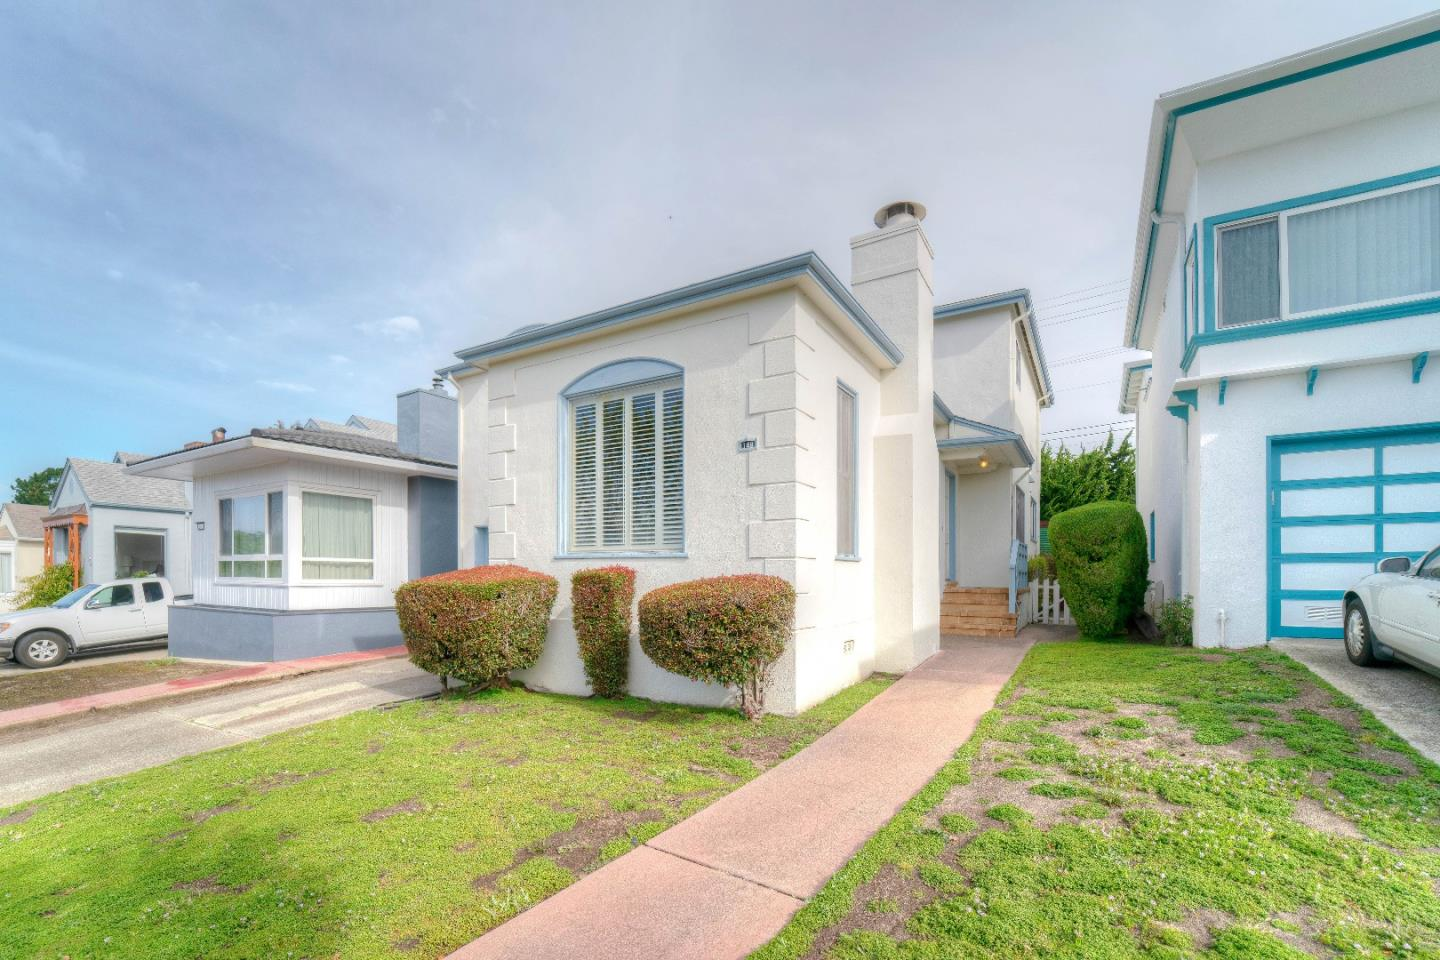 Single Family Home for Sale at 198 Wilshire Avenue 198 Wilshire Avenue Daly City, California 94015 United States